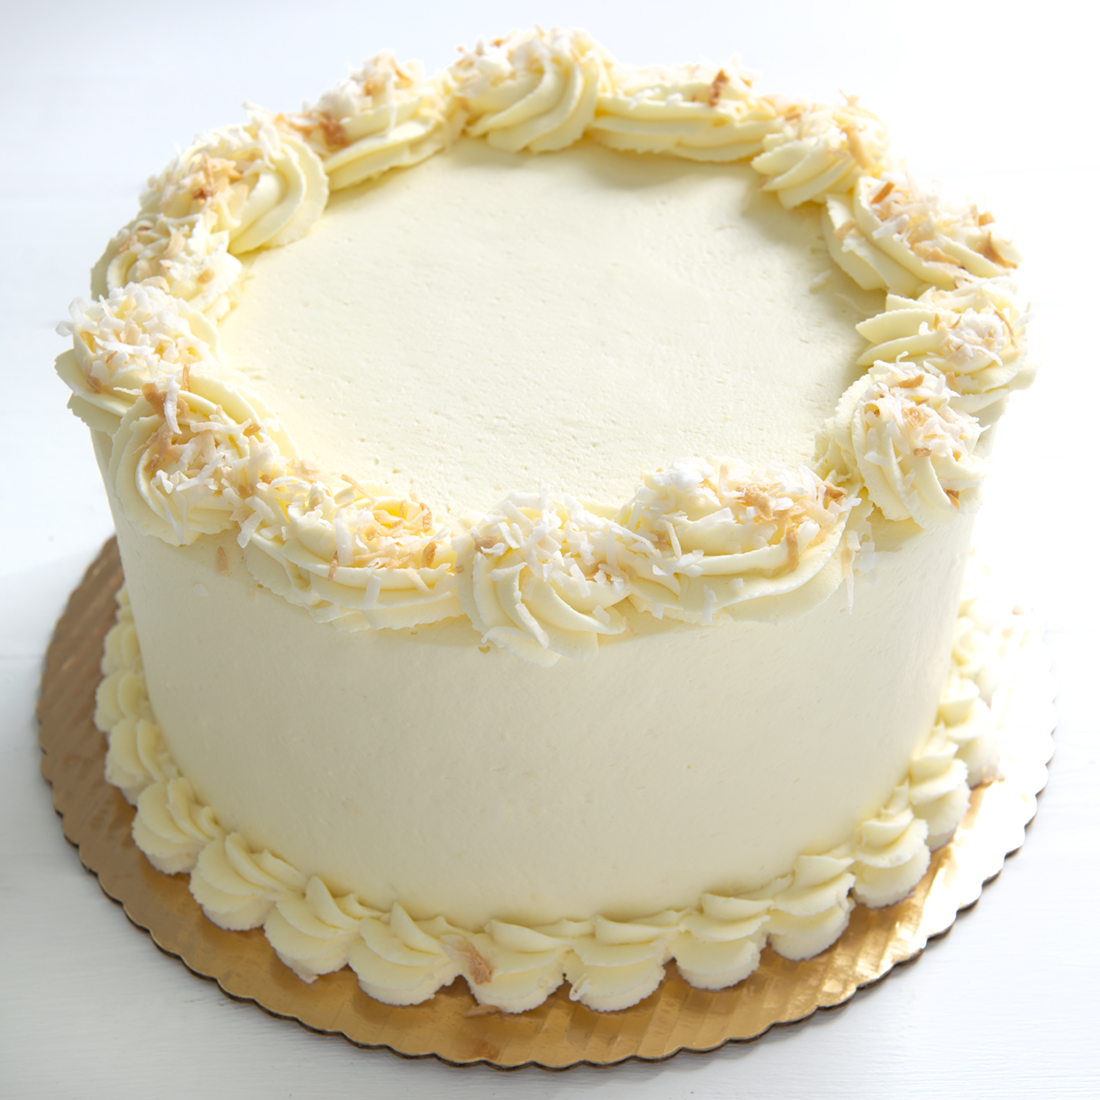 Coconut Dream* - Coconut cake layered with cream cheese filling, fresh whipped cream cheese frosting and sprinkling of toasted coconut6